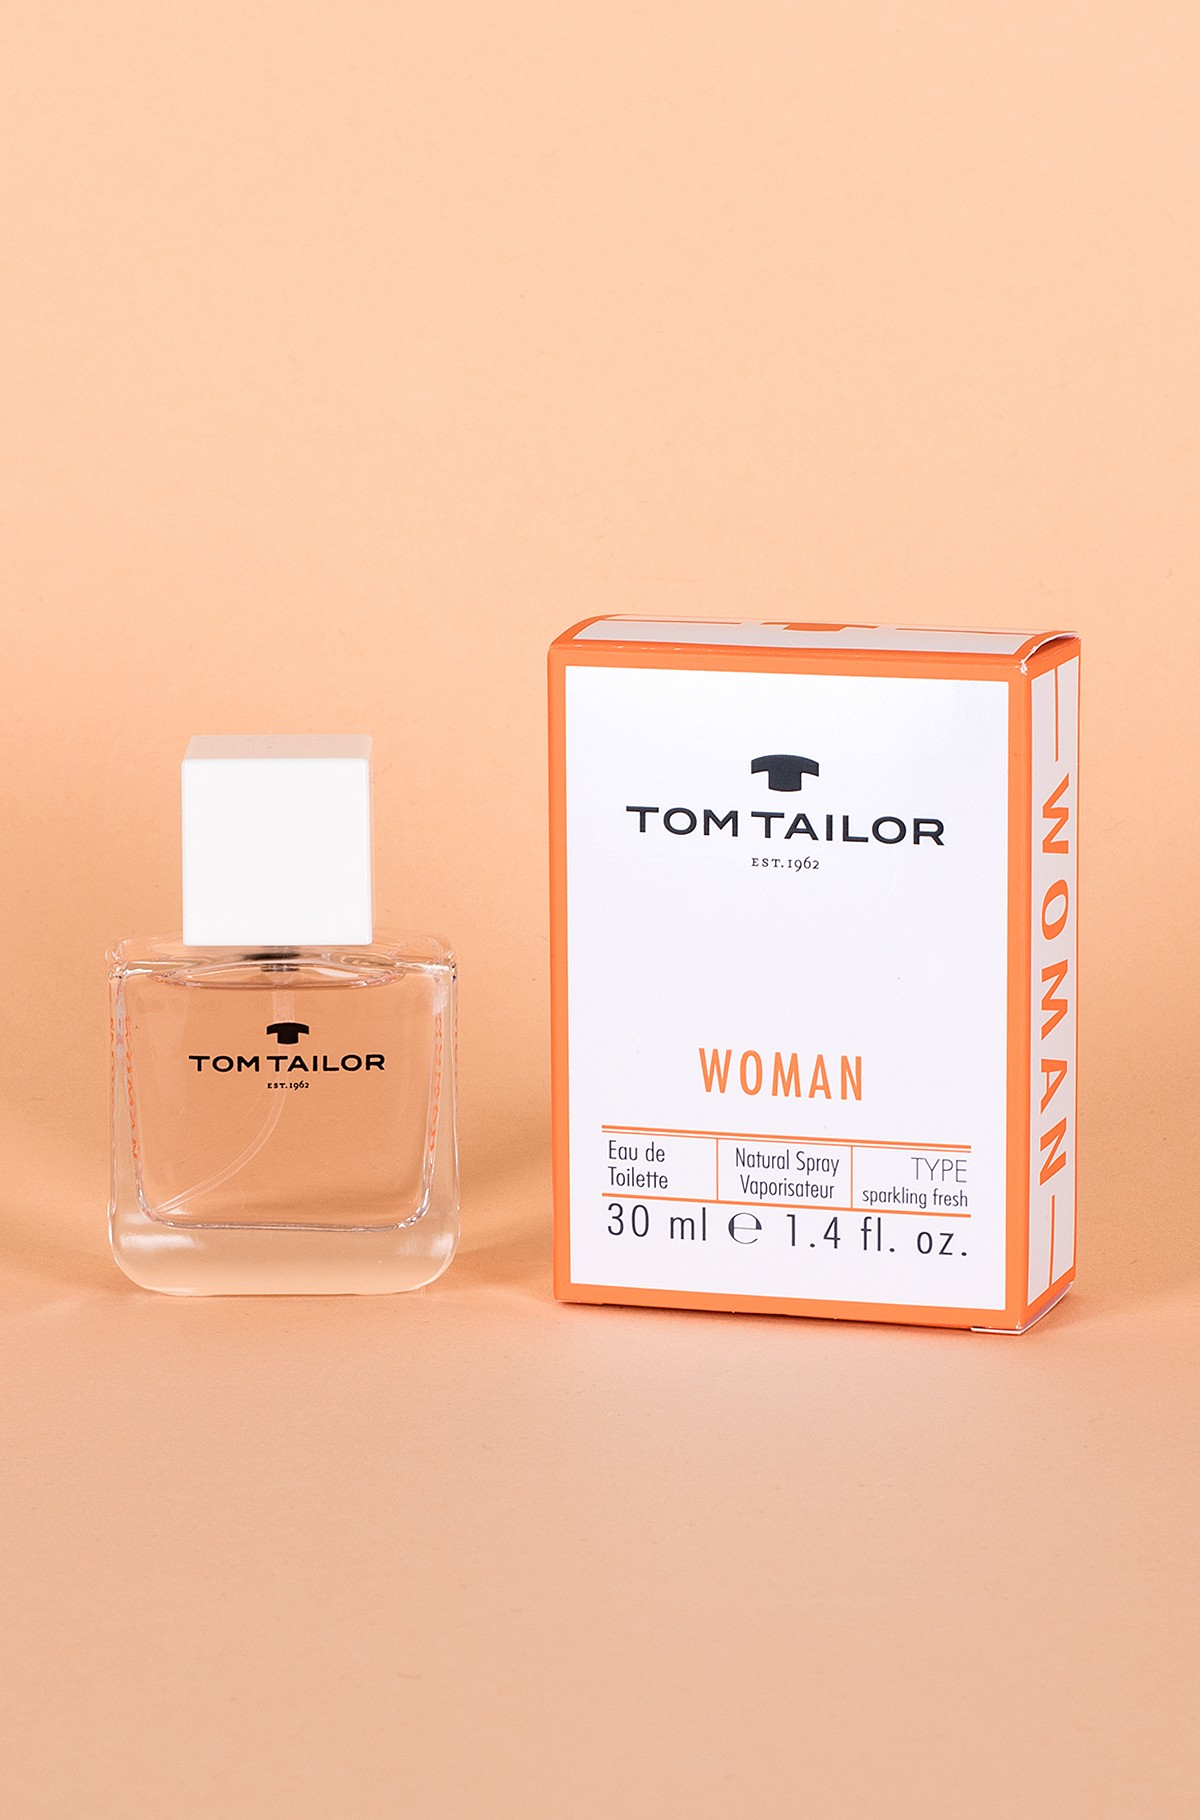 Tualetinis vanduo TT Woman Edt 30ml-full-1